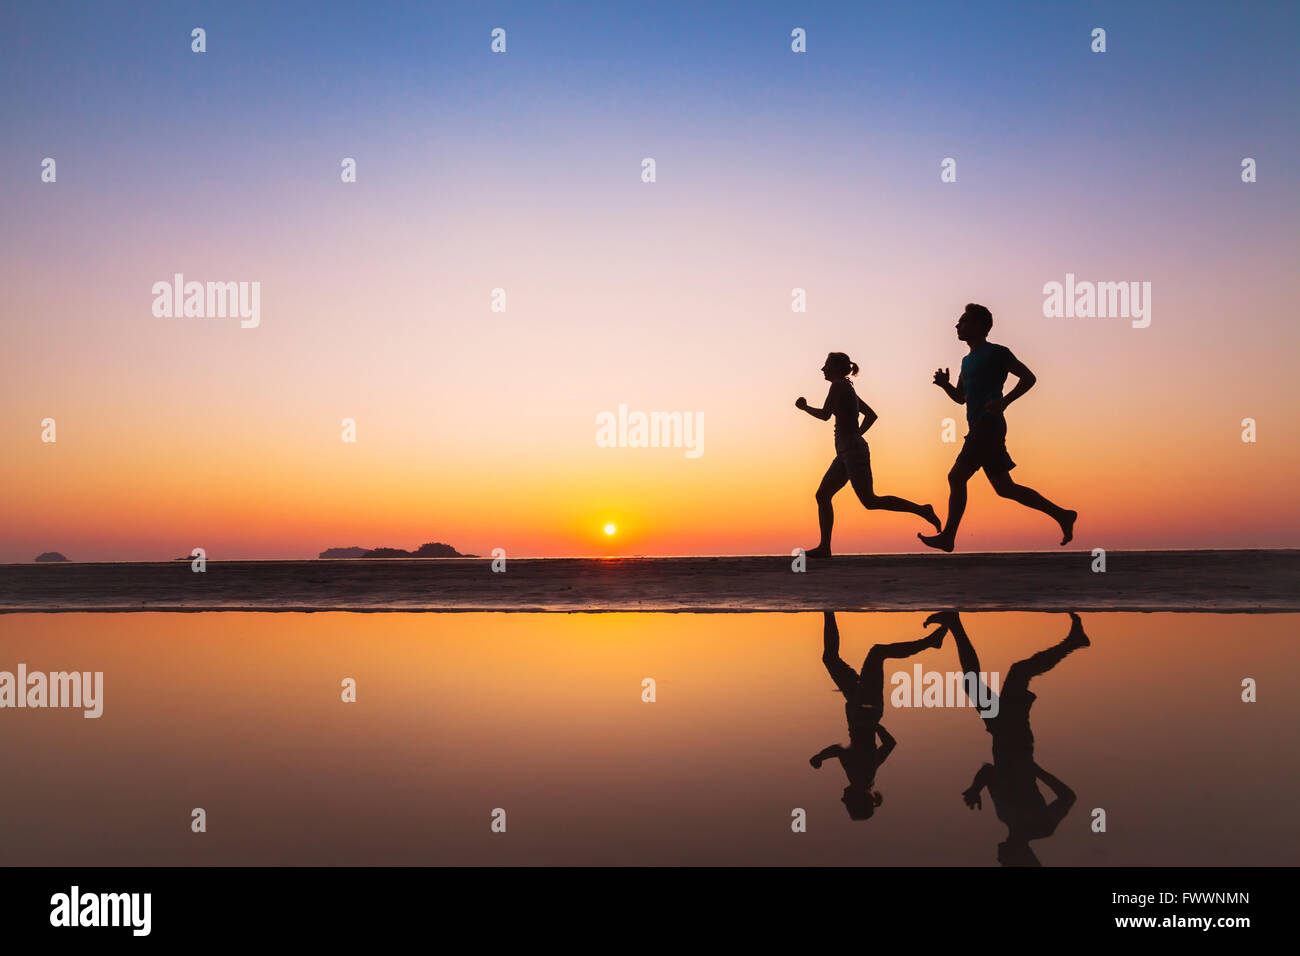 workout, silhouettes of two runners on the beach at sunset, sport and healthy lifestyle background - Stock Image